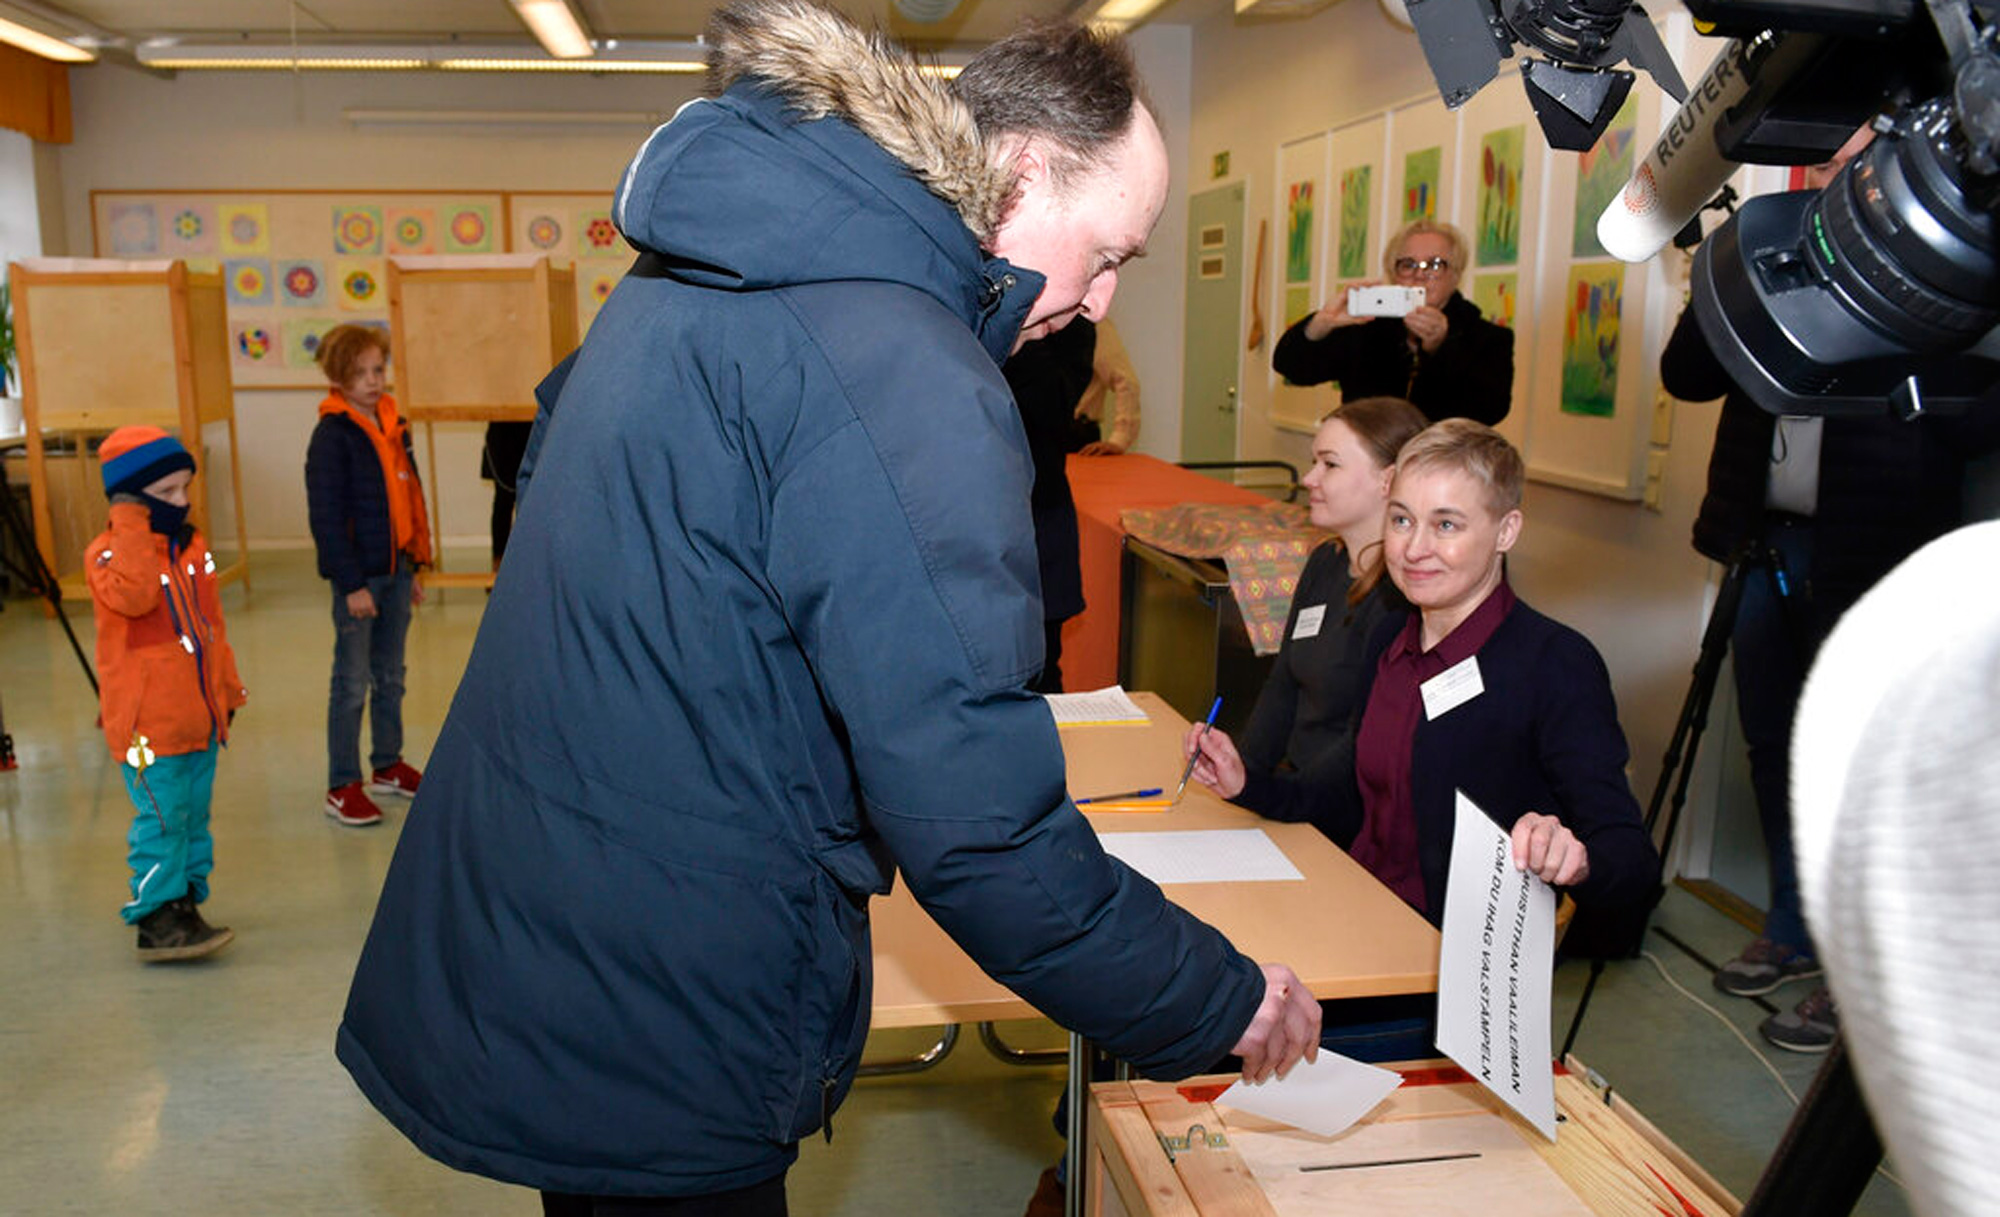 The chairman of the Finns Party and parliamentary candidate Jussi Halla-aho votes in the parliamentary elections, in Helsinki, Finland on Sunday, April 14, 2019.